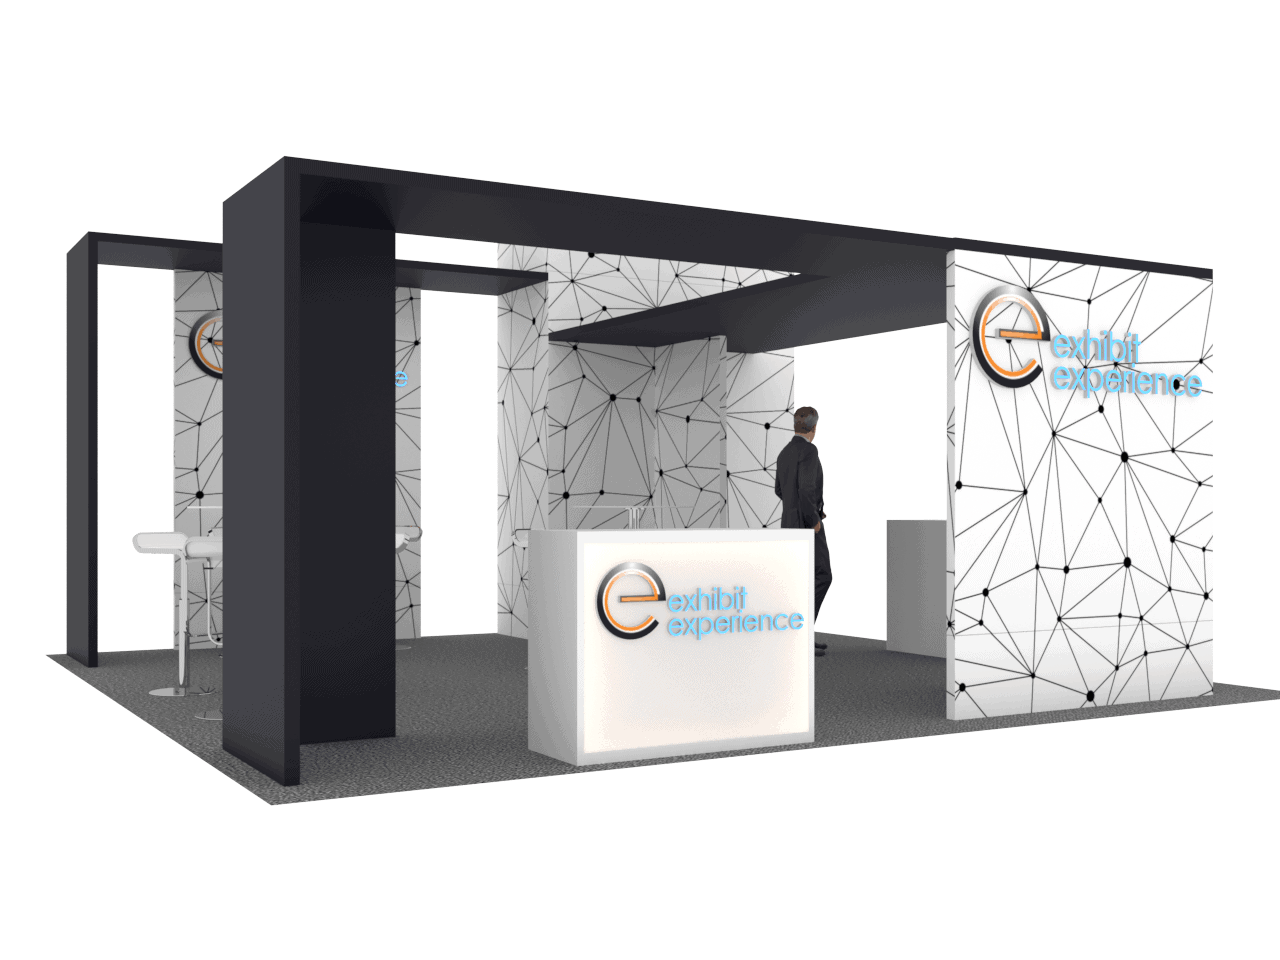 20 x 20 Railway Interchange Expo Booth Rental